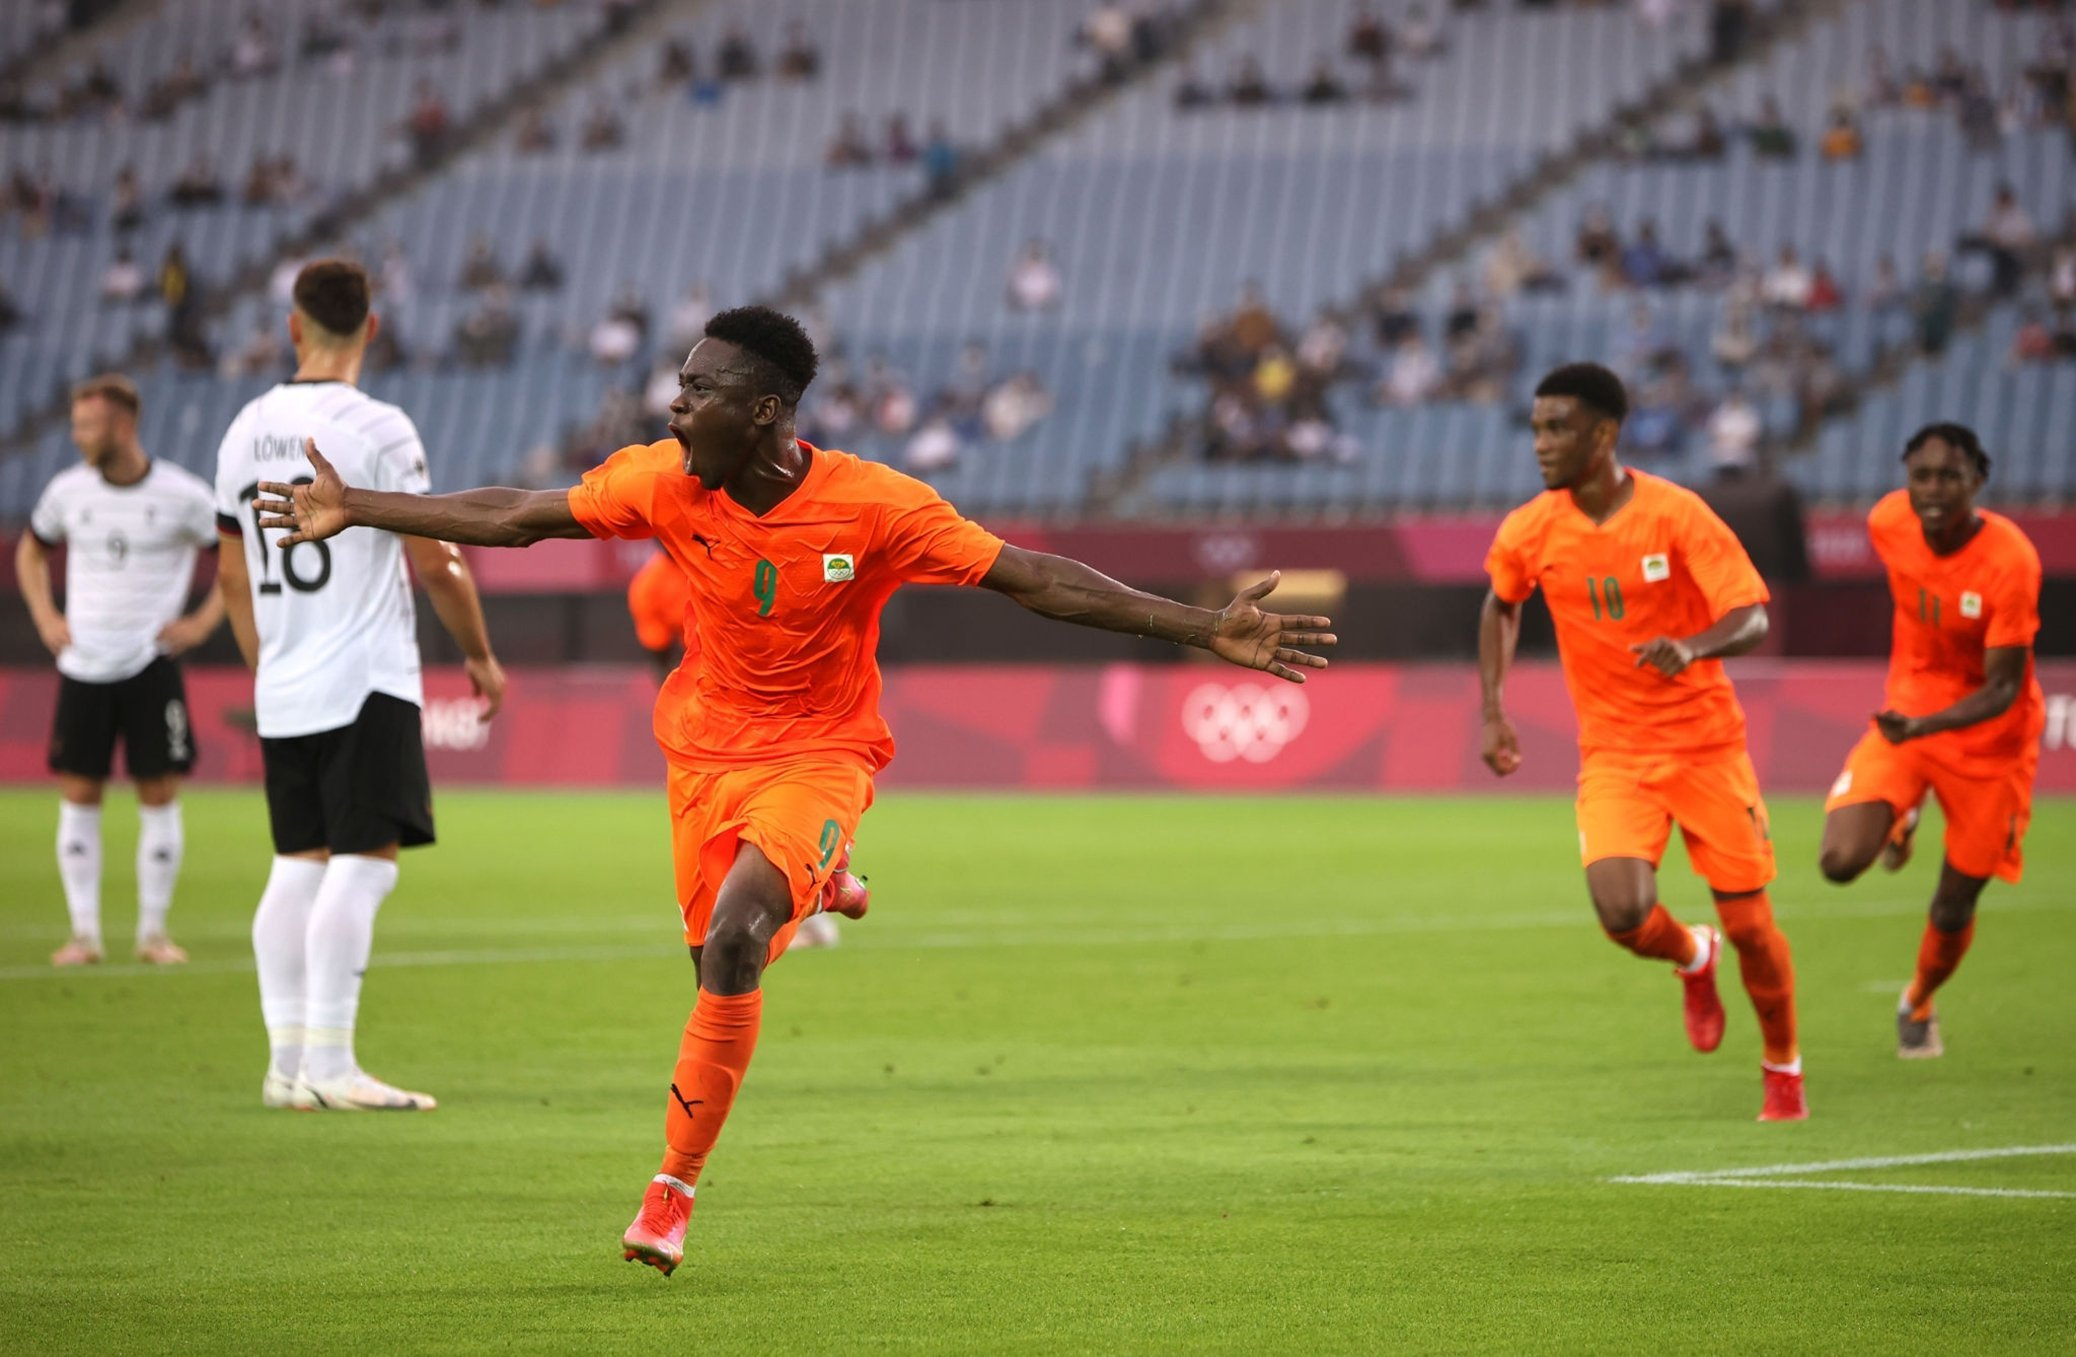 Olympics football: Ivory Coast through to quarters after Germany draw